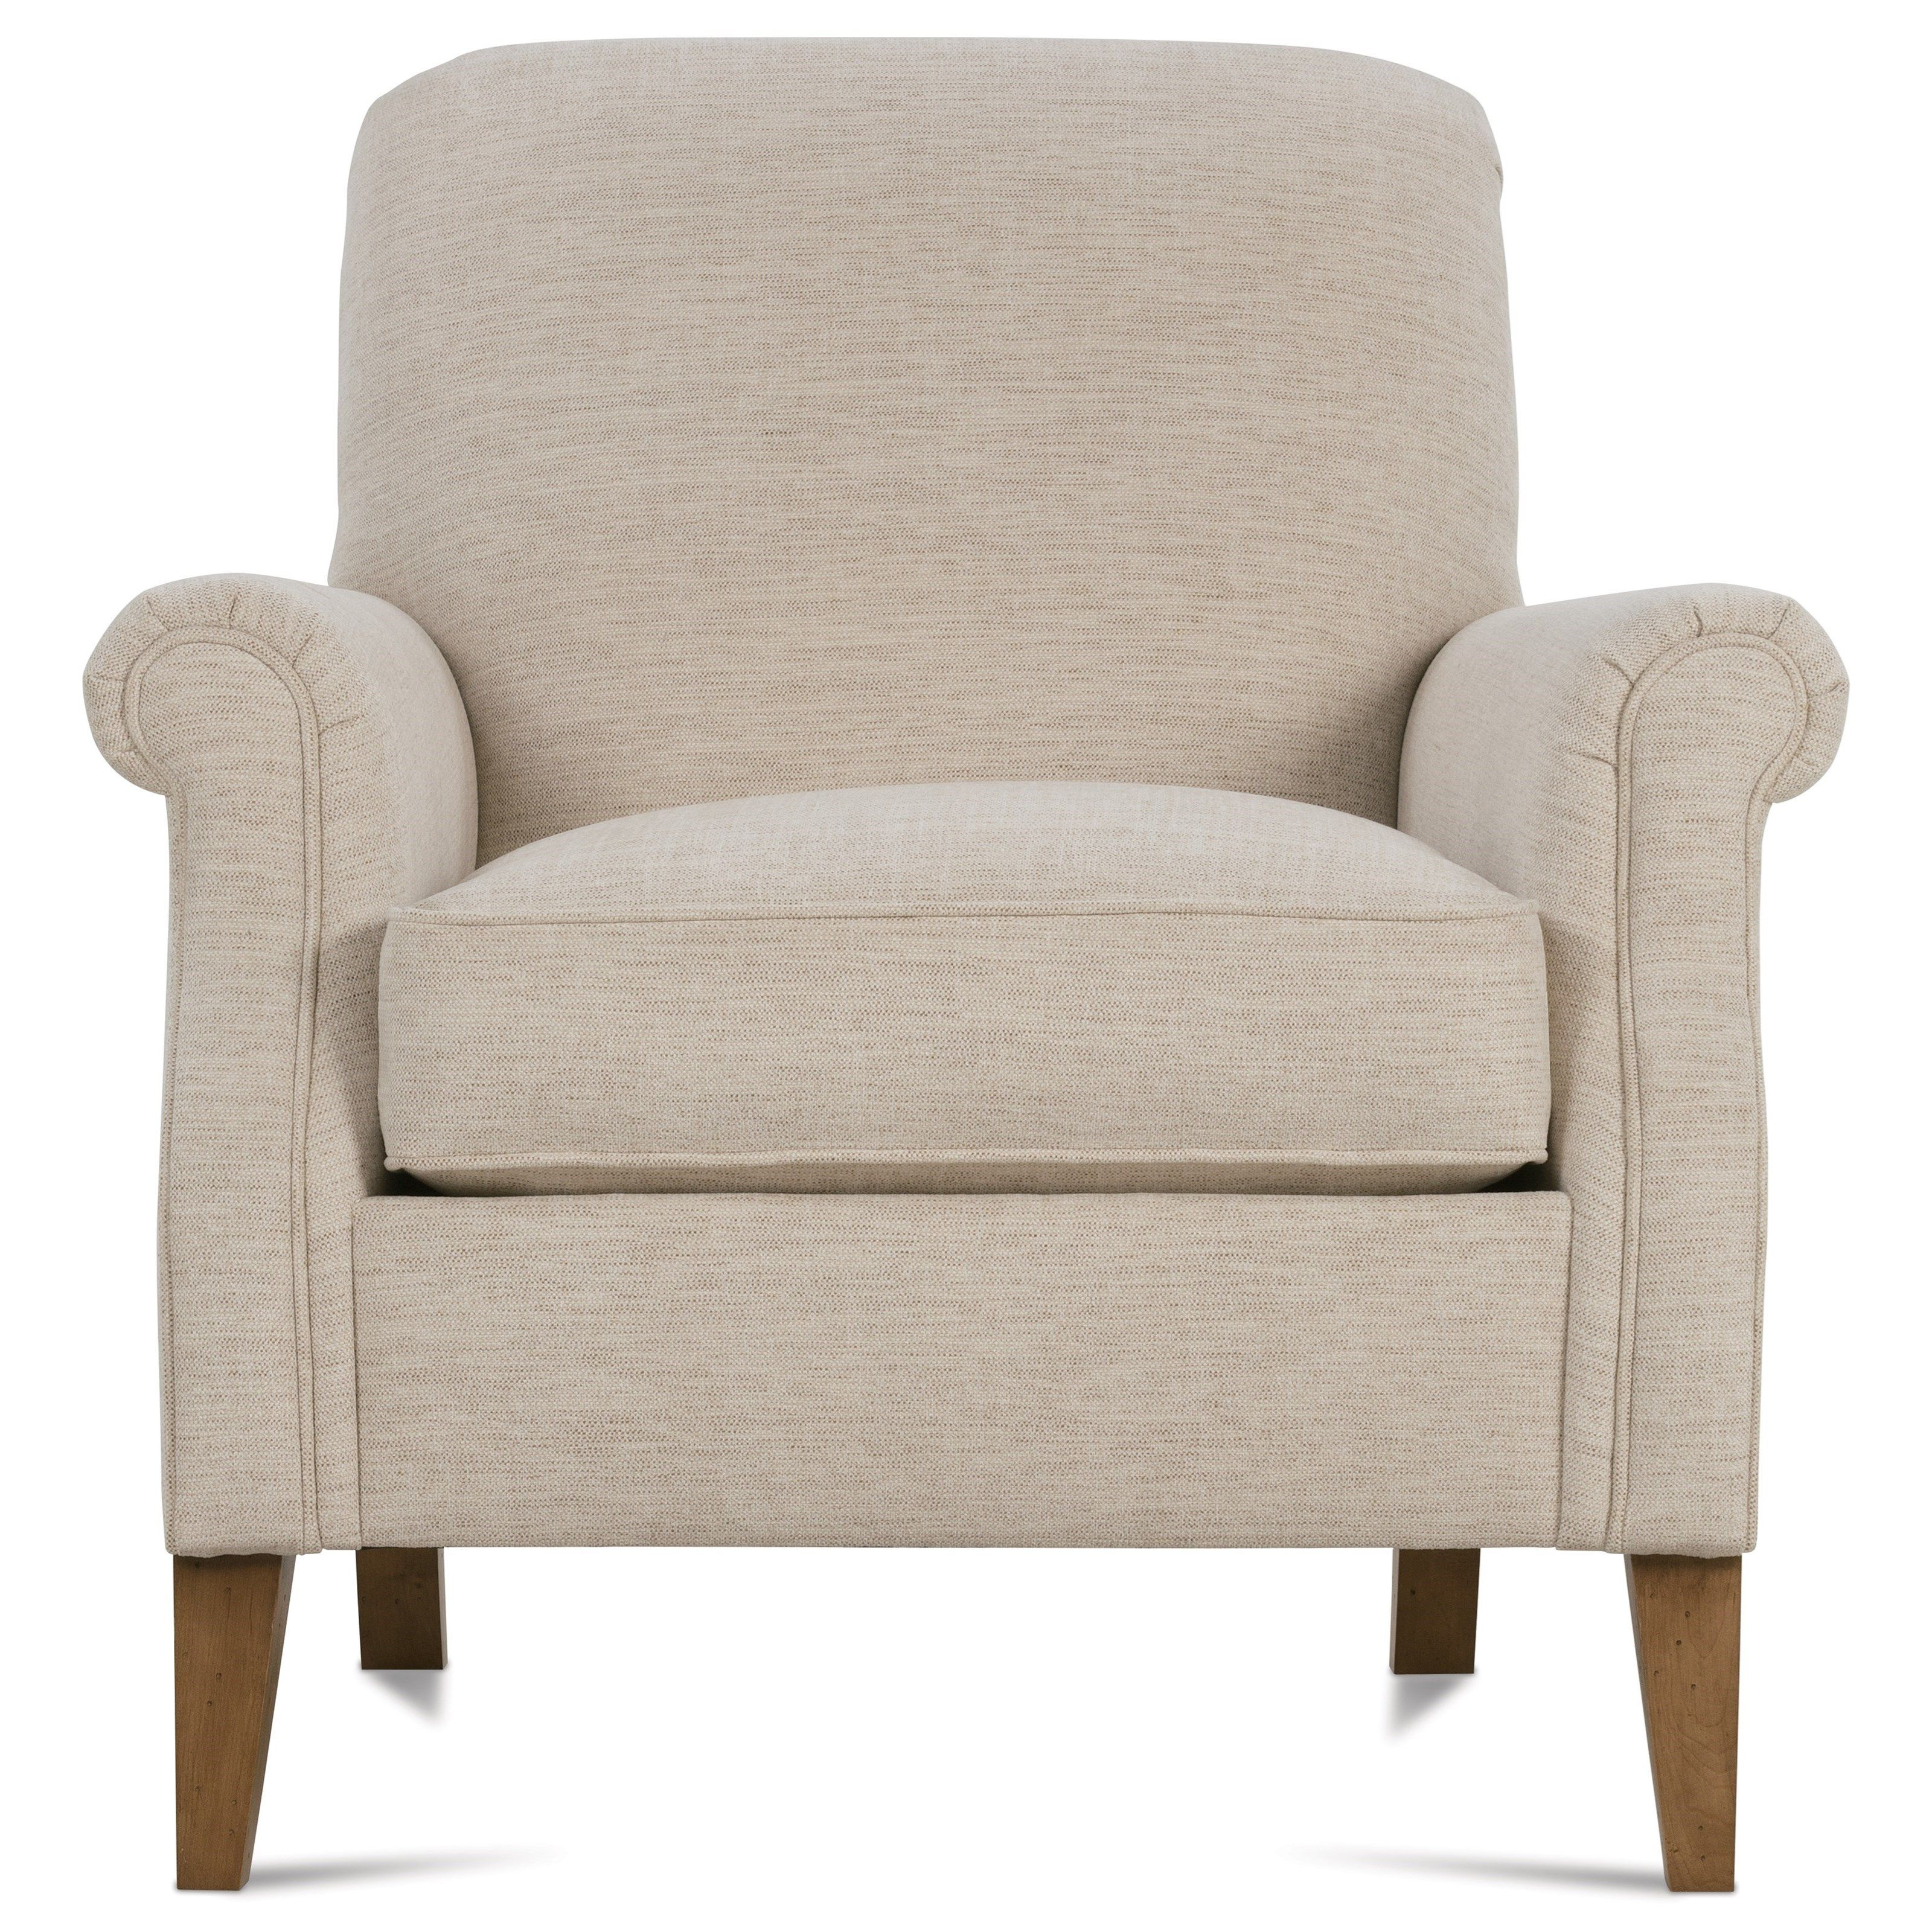 Channing Transitional Chair with Rolled Arms and Tight Seat ...